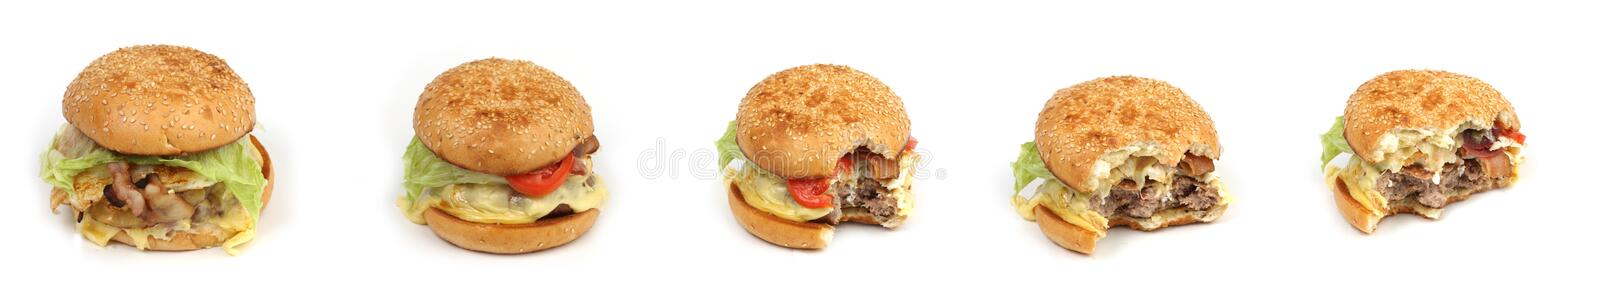 Eating buger stock photography